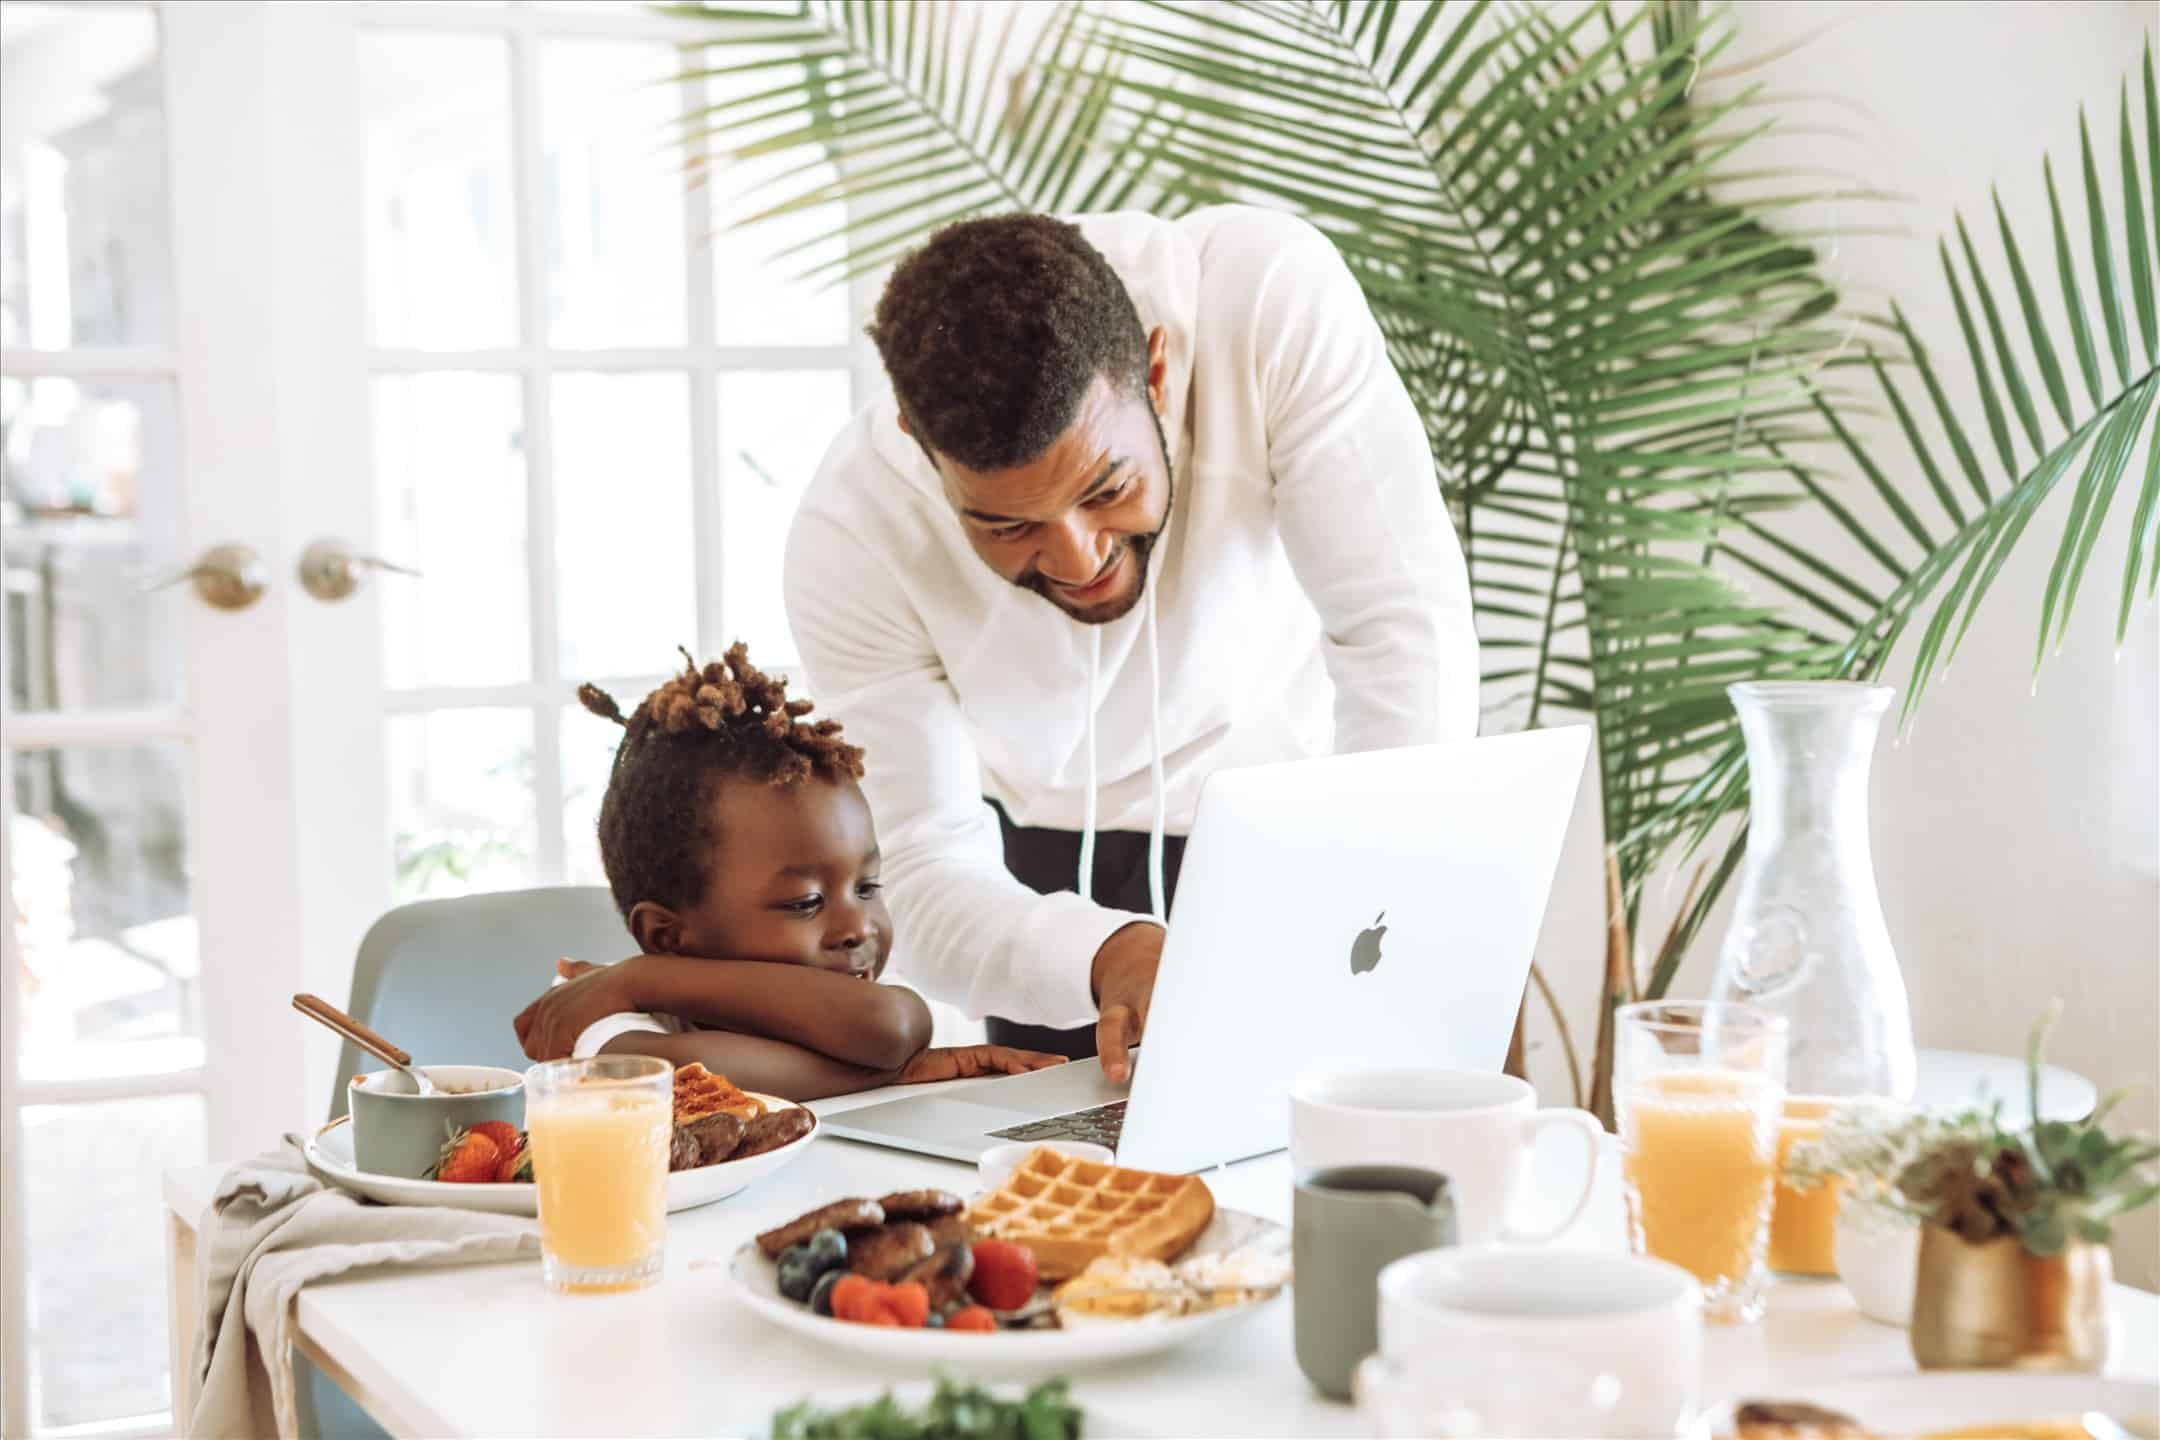 5 Reasons why Parental Control Software is necessary